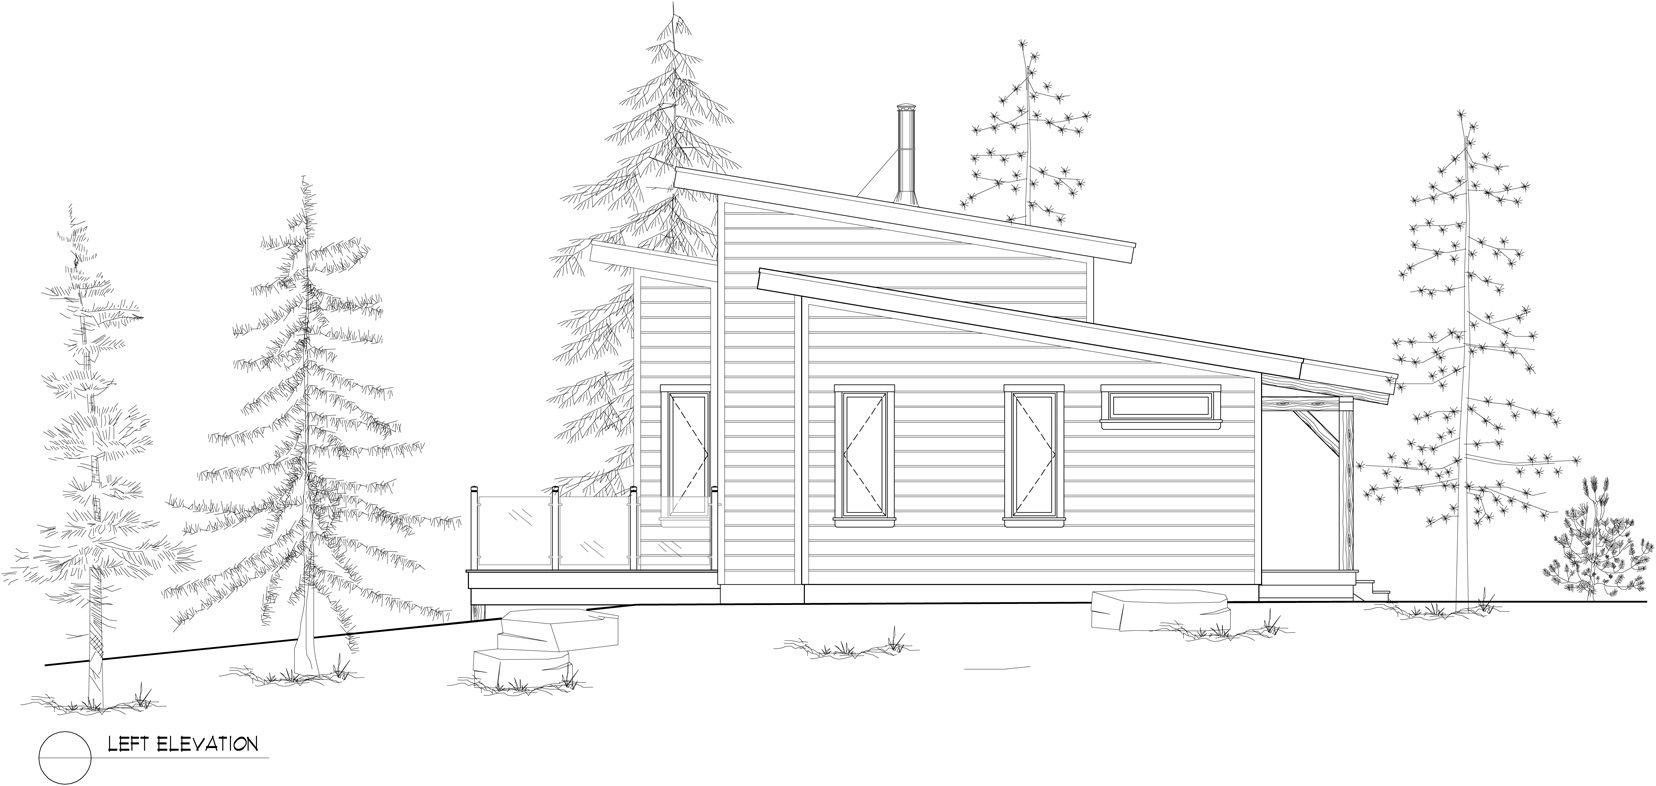 Normerica Timber Frames, House Plan, The Kershaw 3808, Left Elevation